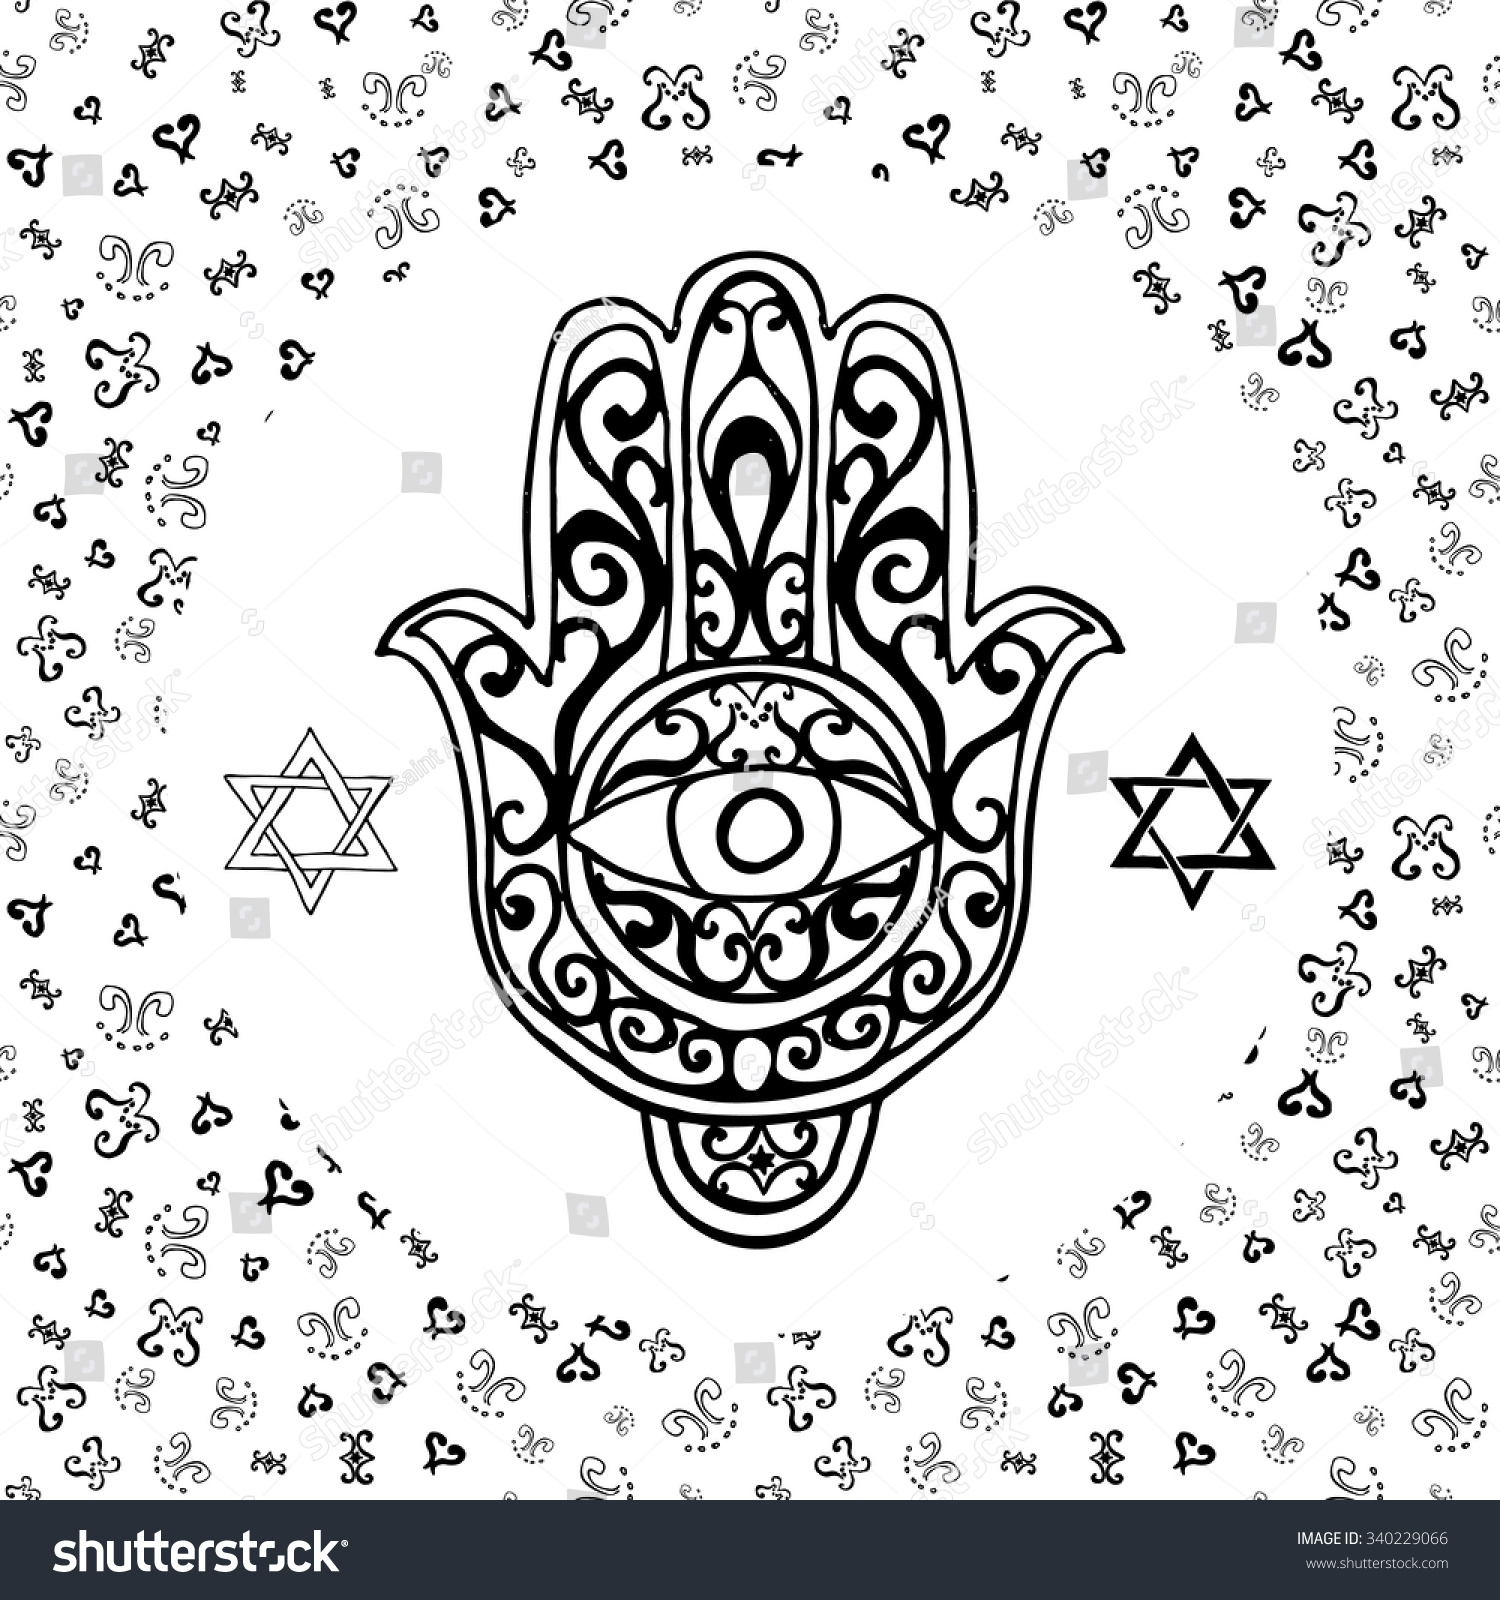 Royalty Free Hand Drawn Sketch Of Traditional Jewish 340229066